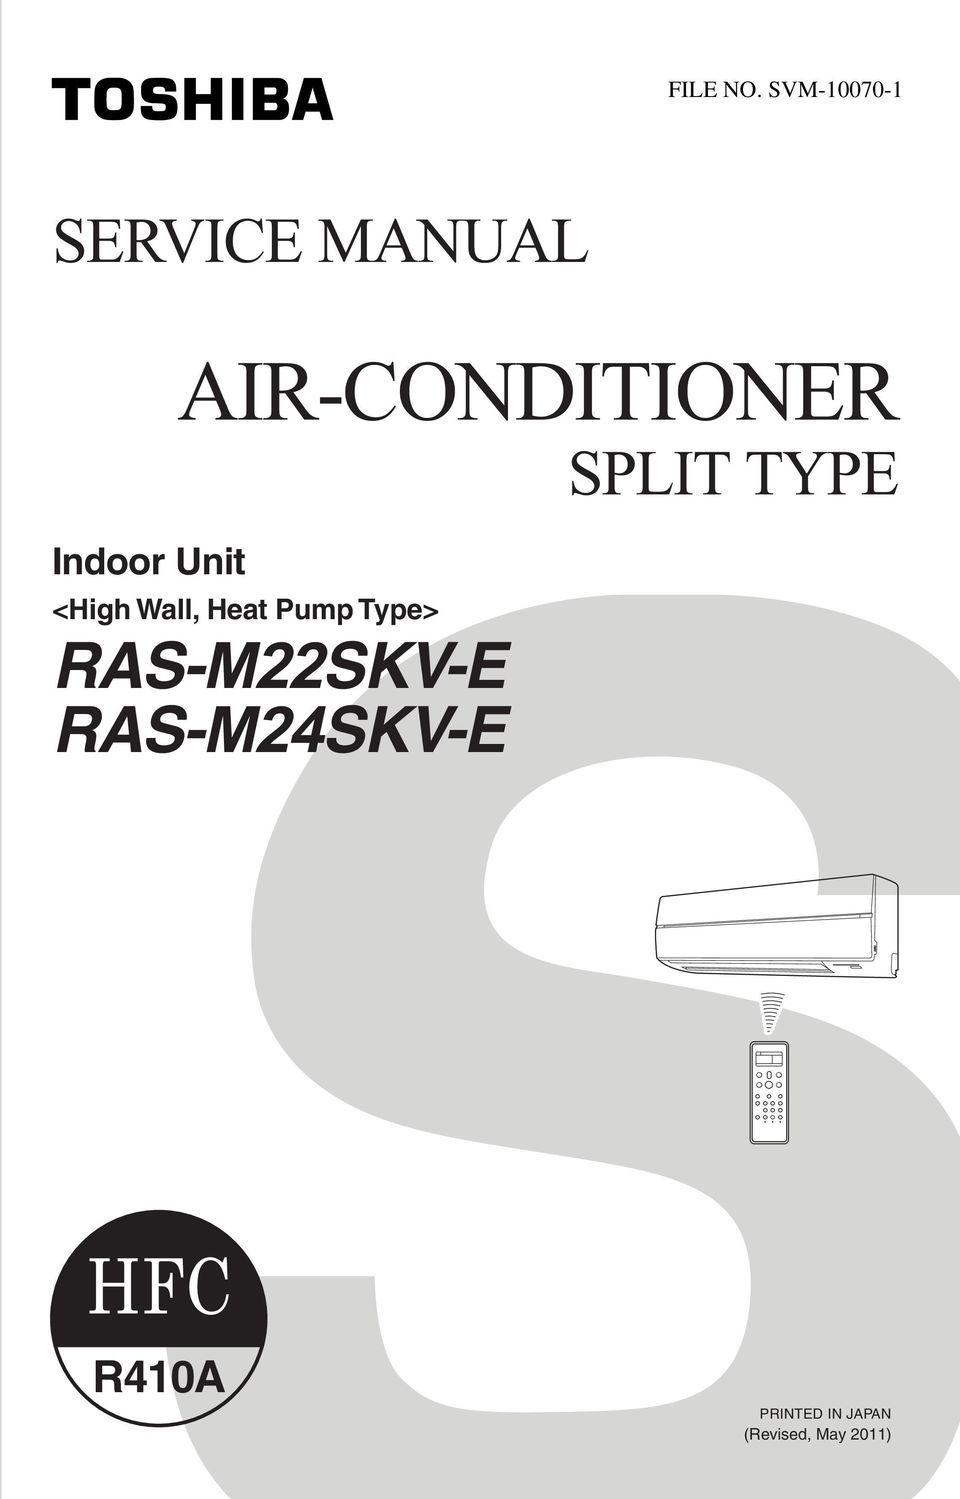 AIR-CONDITIONER SPLIT TYPE <High Wall,